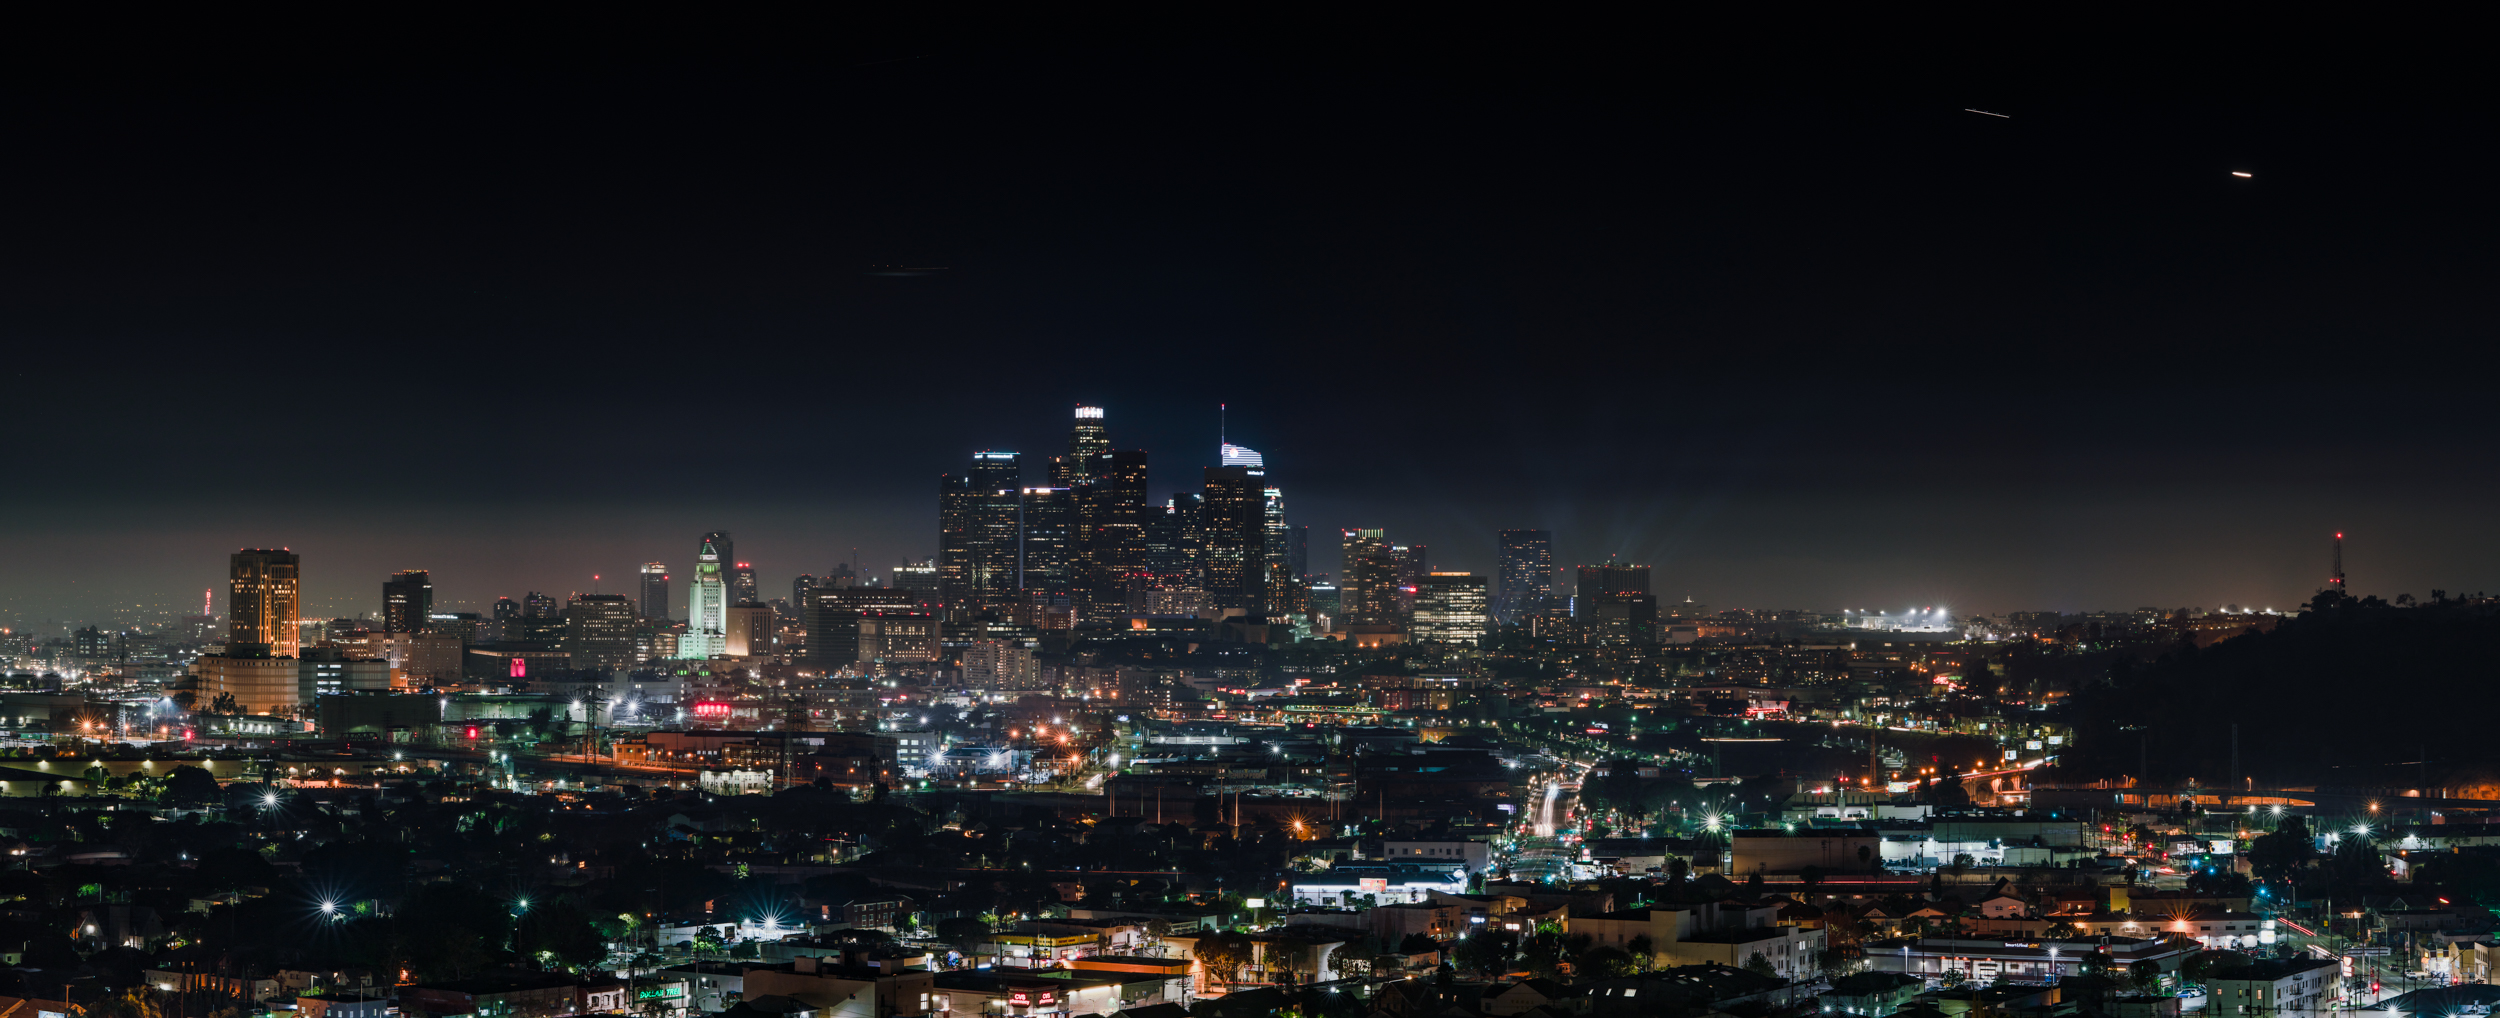 DTLA_NIGHT SKYLINE FROM LINCOLN HEIGHTS_PANORAMA_001.jpg